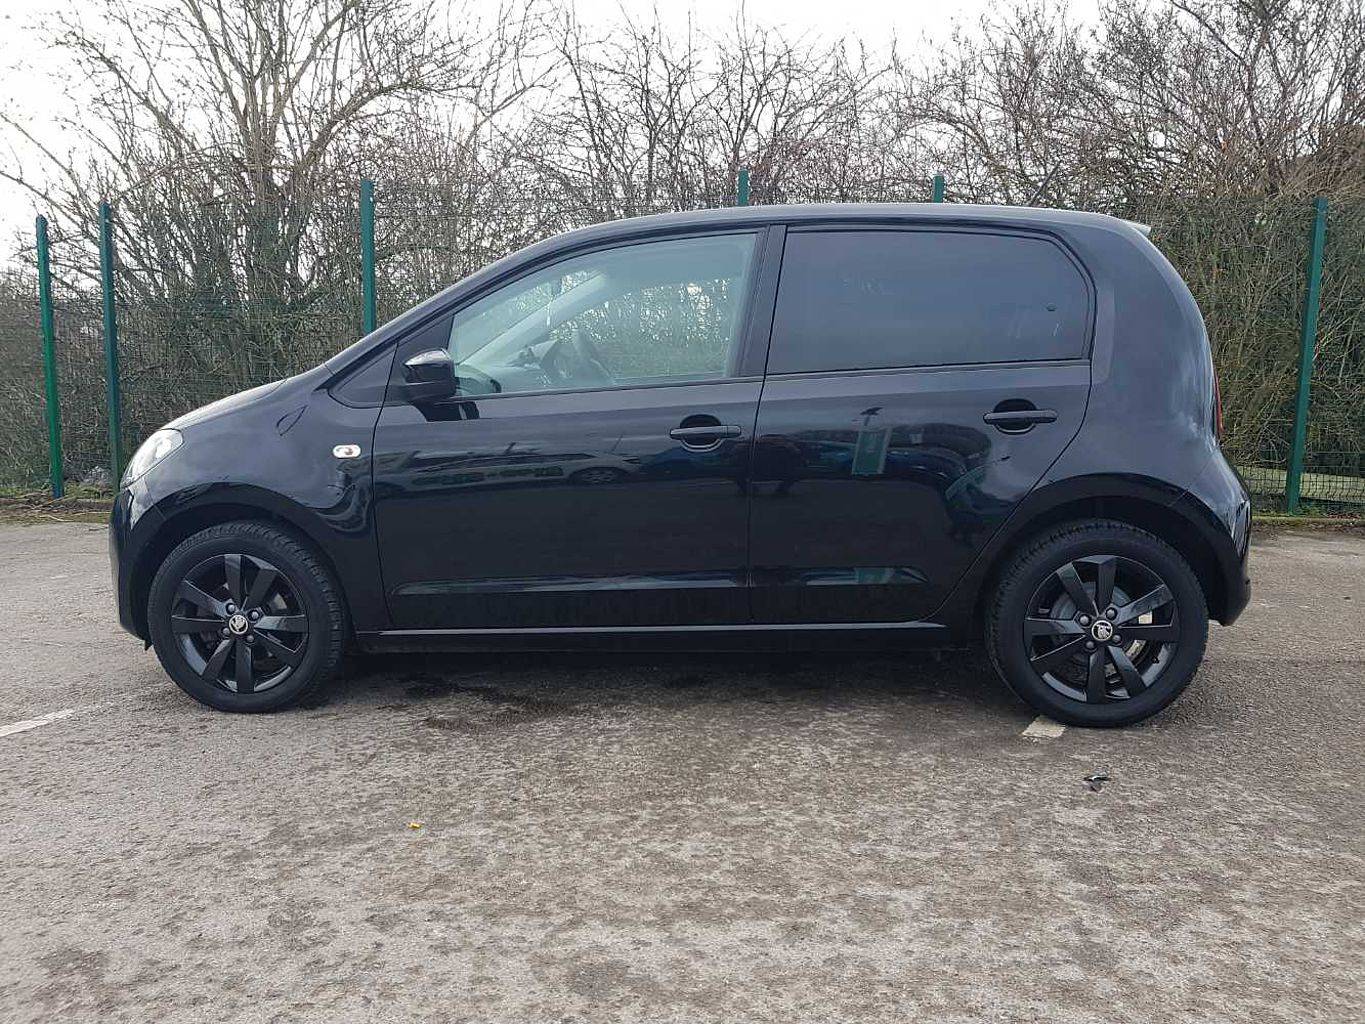 2017 Deep Black Pearlescent Skoda Citigo Hatchback 5-Dr 1.0 MPI, Petrol, Manual